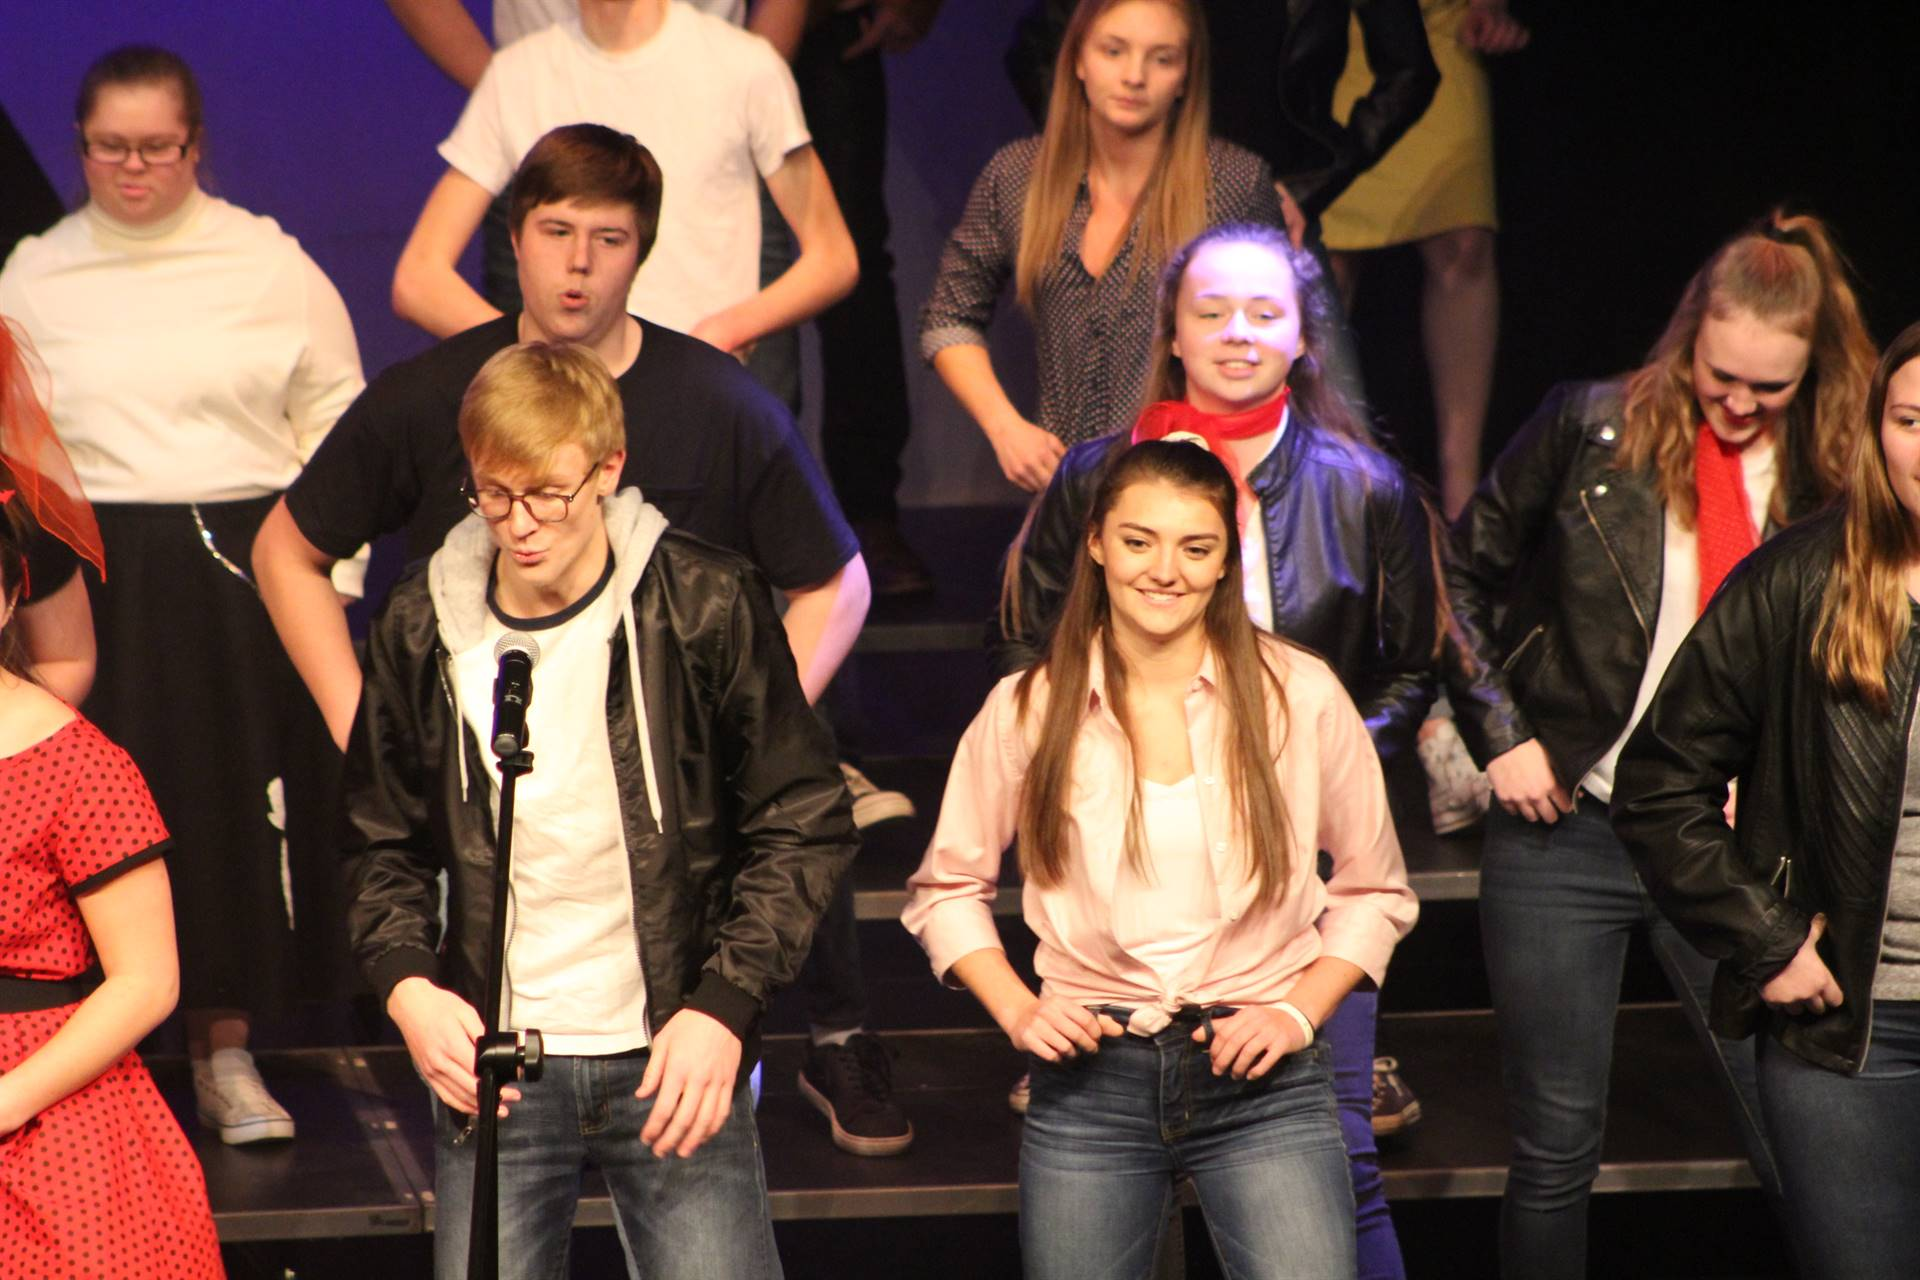 High school students singing and dancing on stage